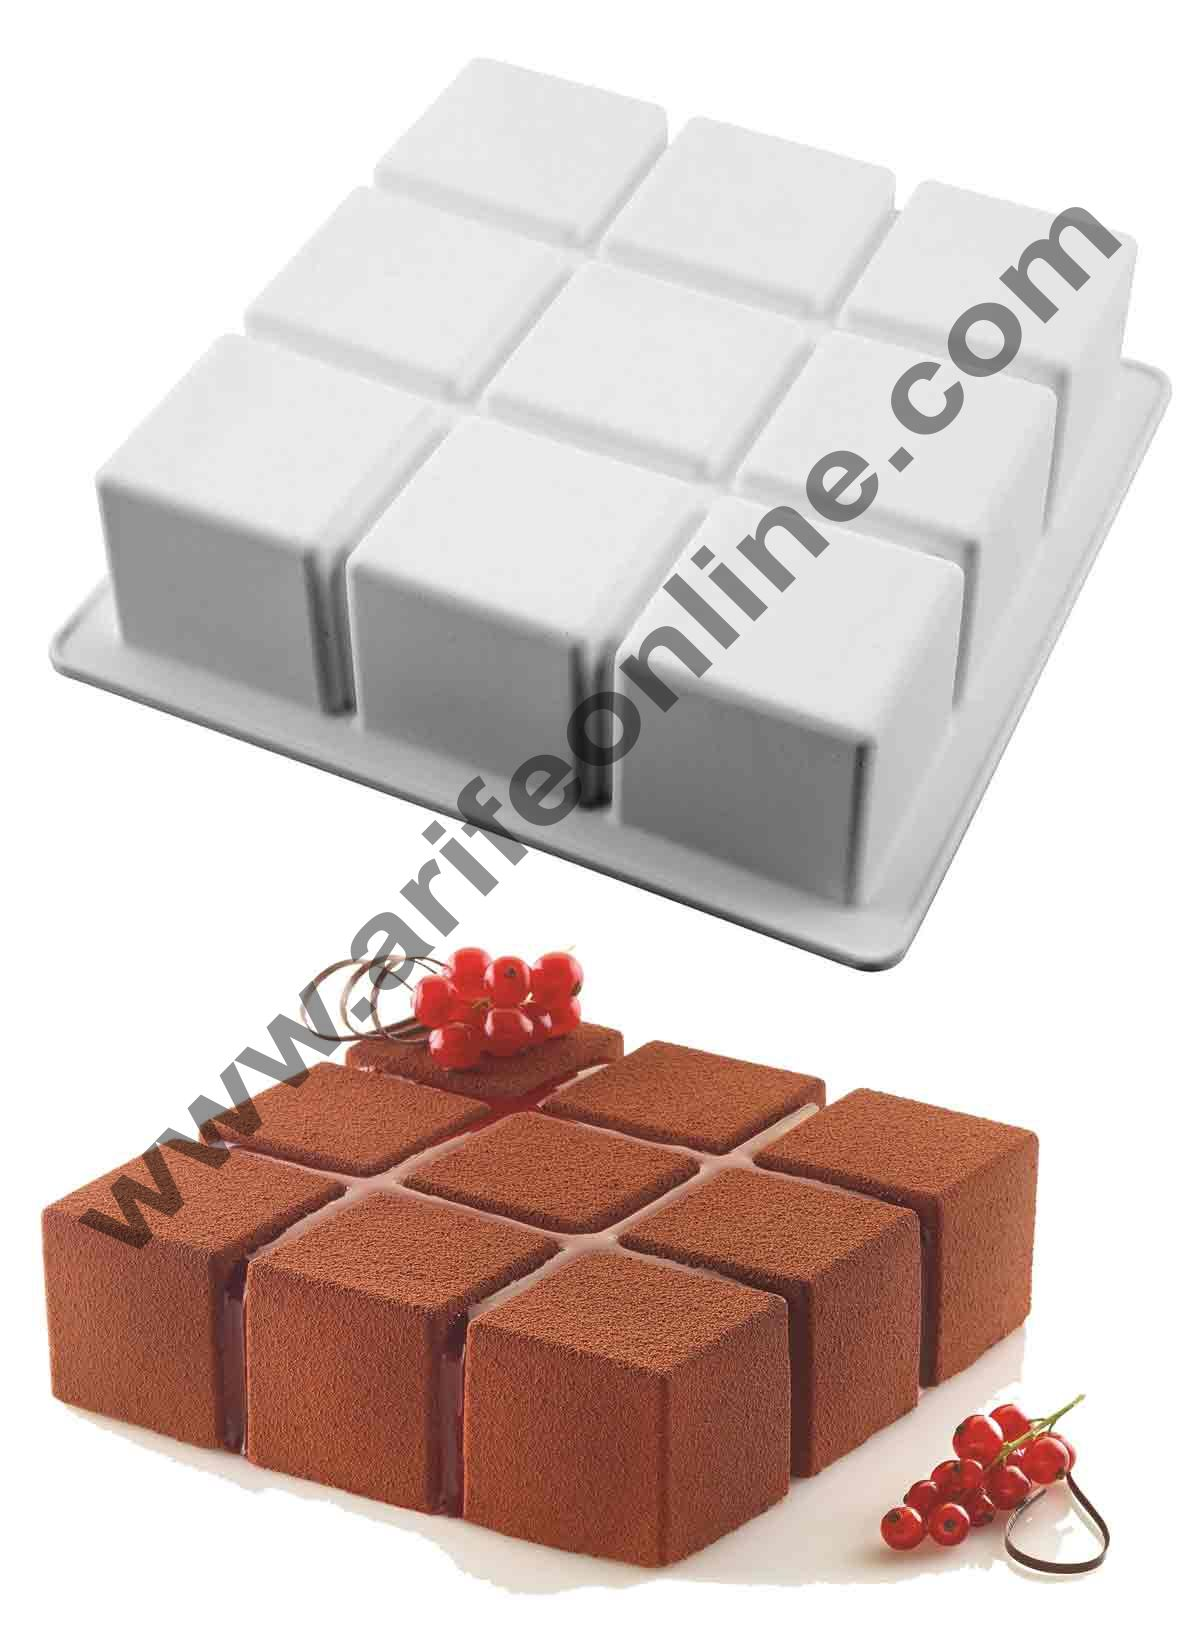 Cake Decor Silicon Cubik Design Cake Mould Mousse Cake Mould Silicon Moulds